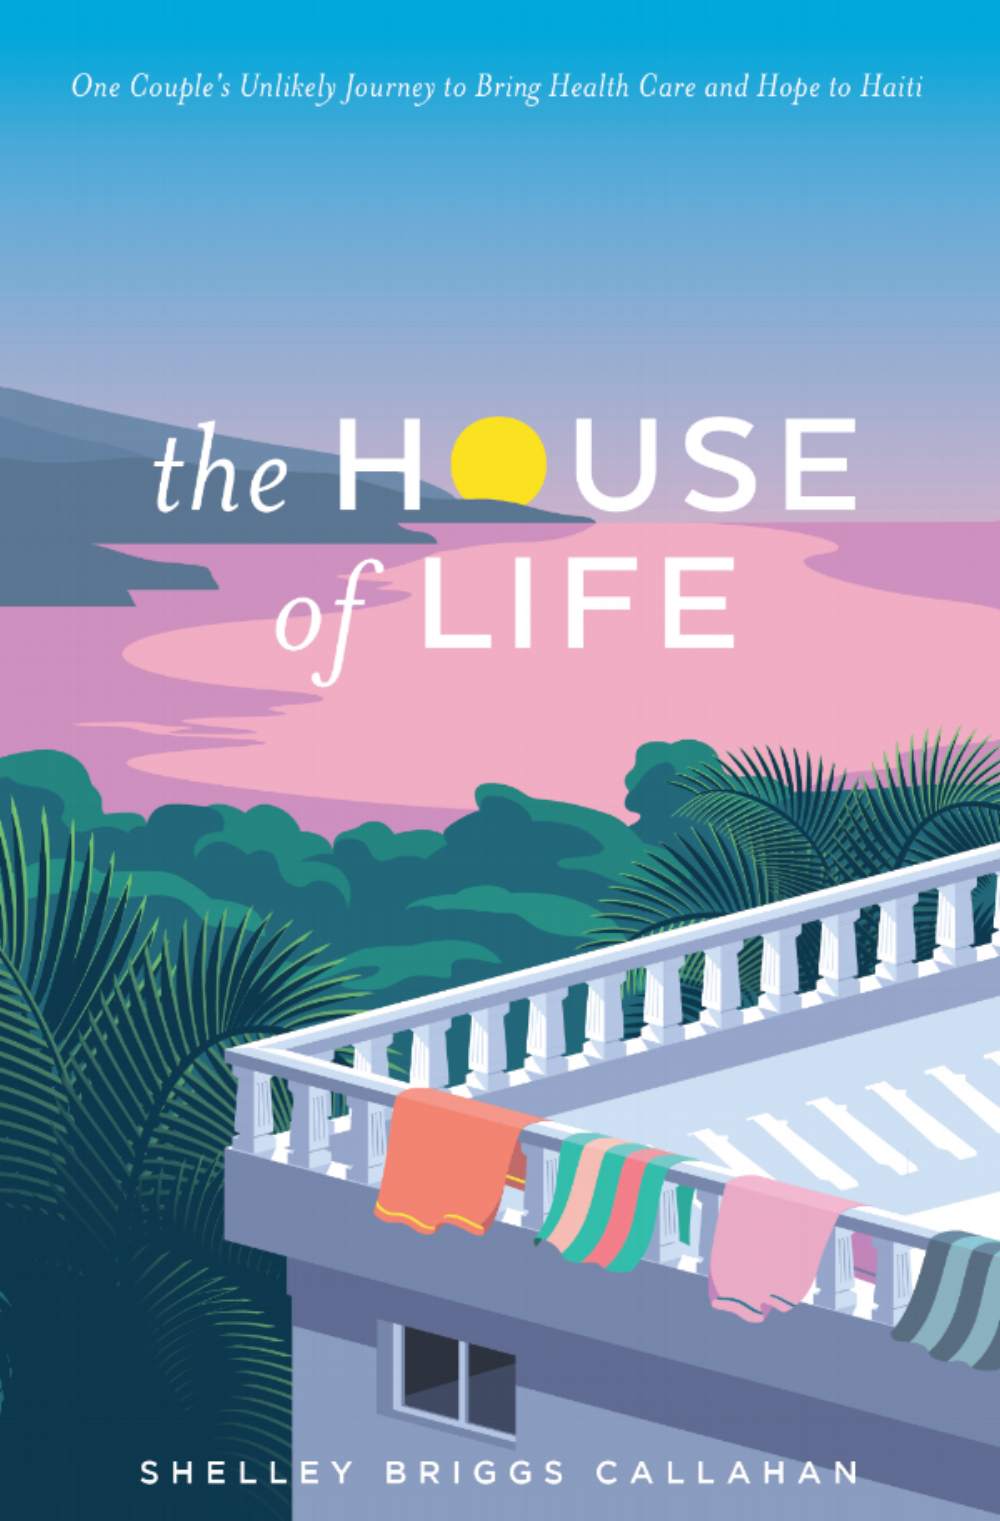 The House of Life: One Couple's Journey to Bring Health Care and Hope to Haiti - By Shelley Briggs Callahan